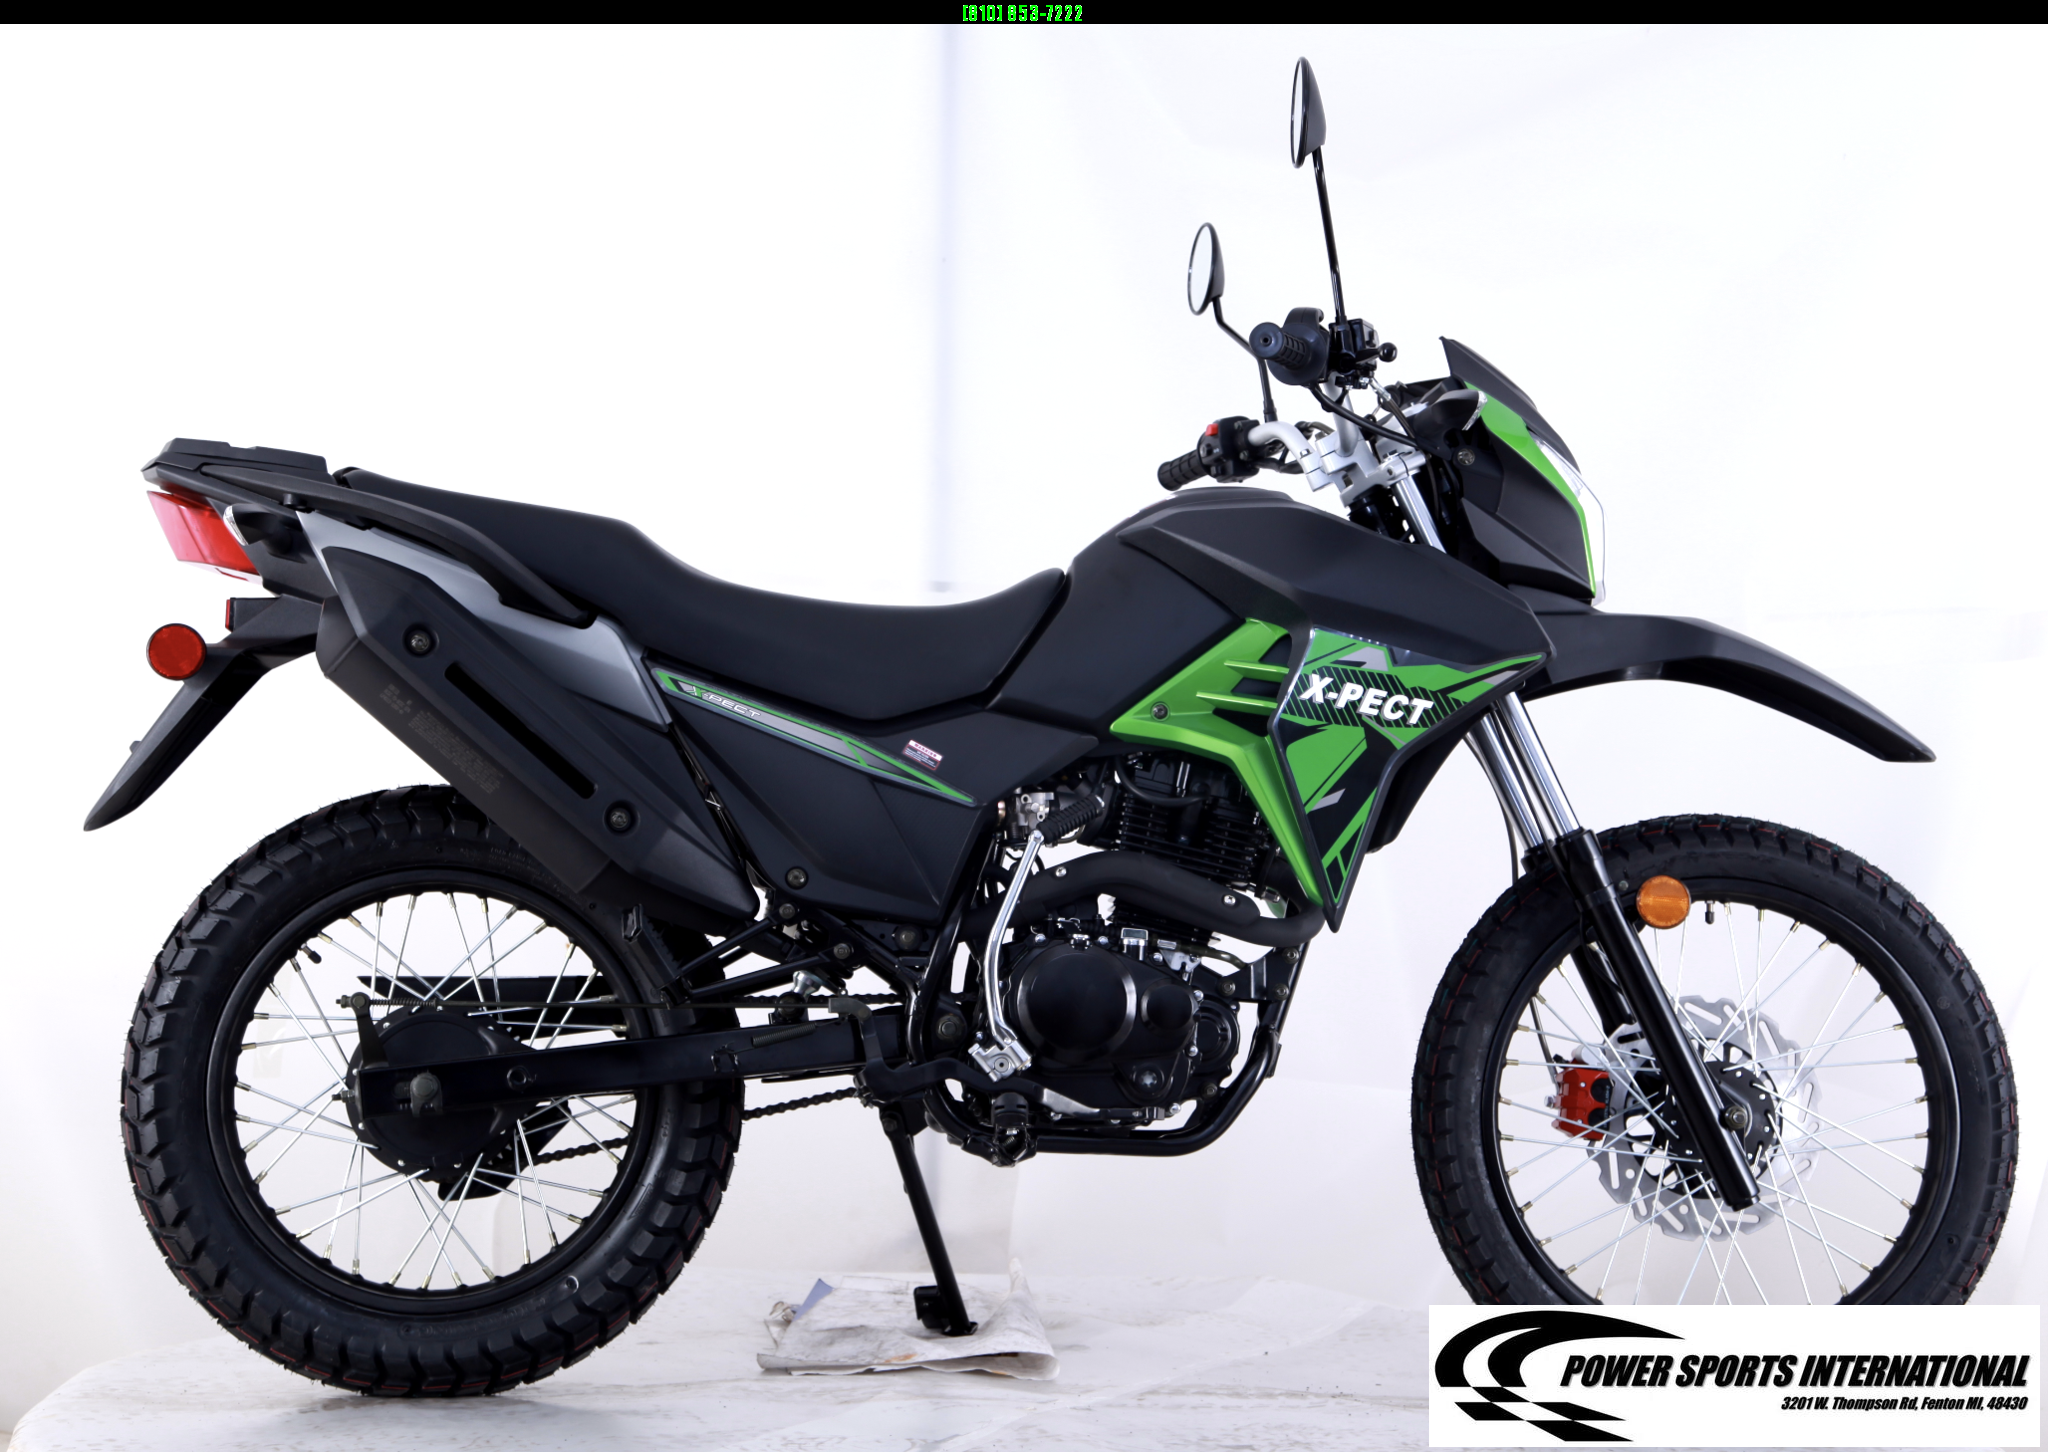 2020 X-PECT LIFAN 200CC DUAL SPORT DIRT BIKE MOTORCYCLE - LF200GY-4 - STREET LEGAL #0086